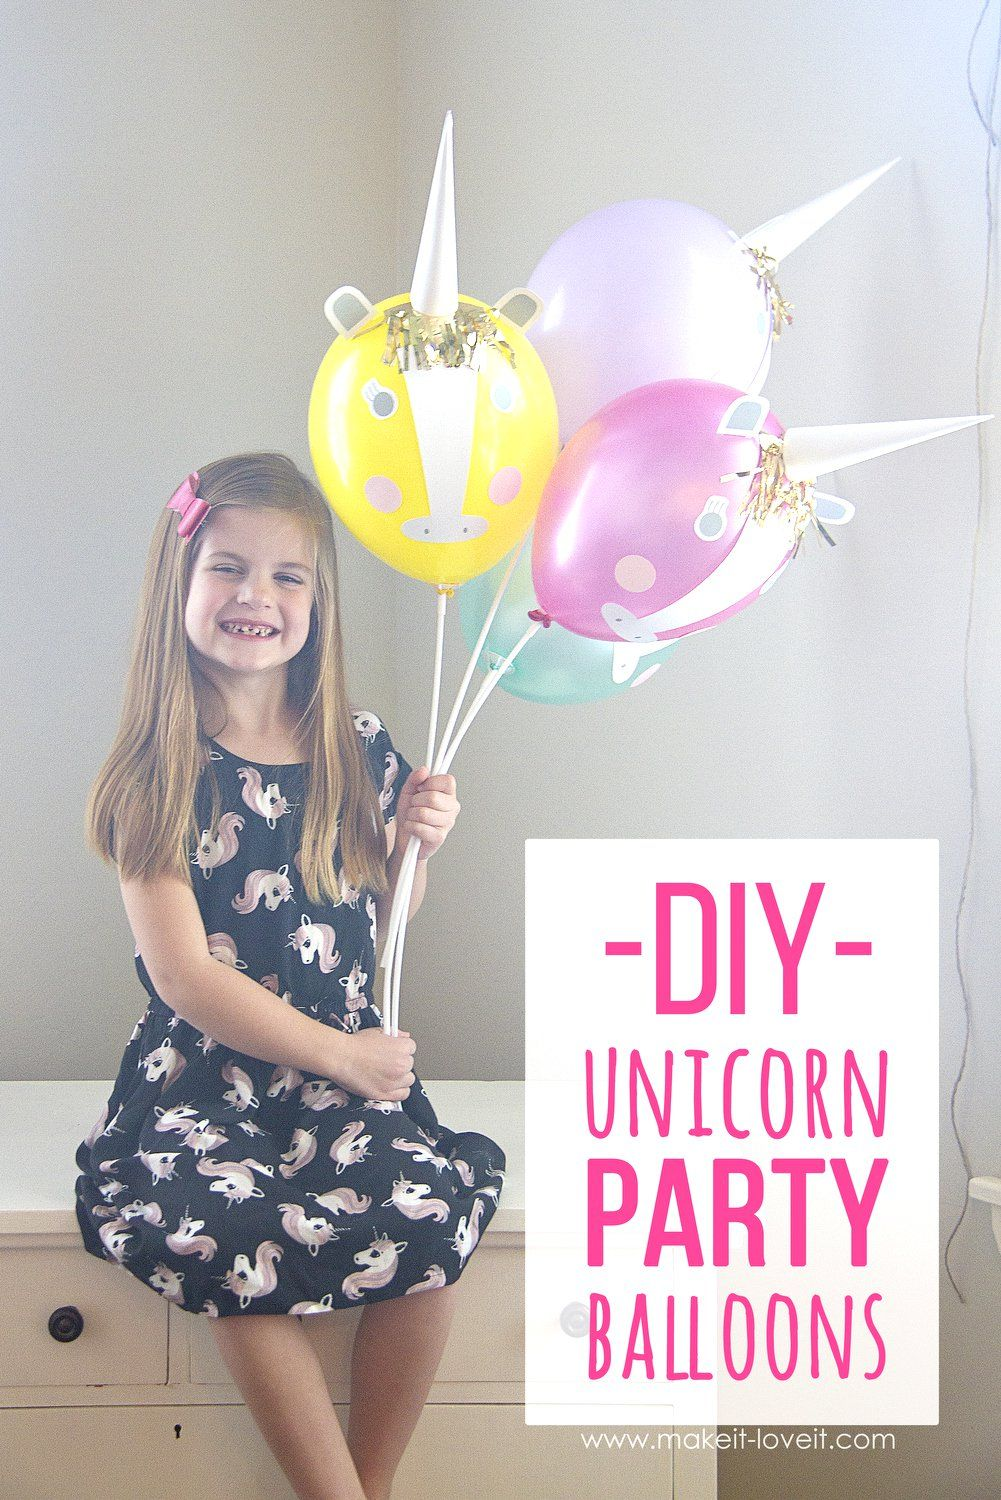 DIY Unicorn Party Balloons (Make It and Love It)   Unicorn party and ...